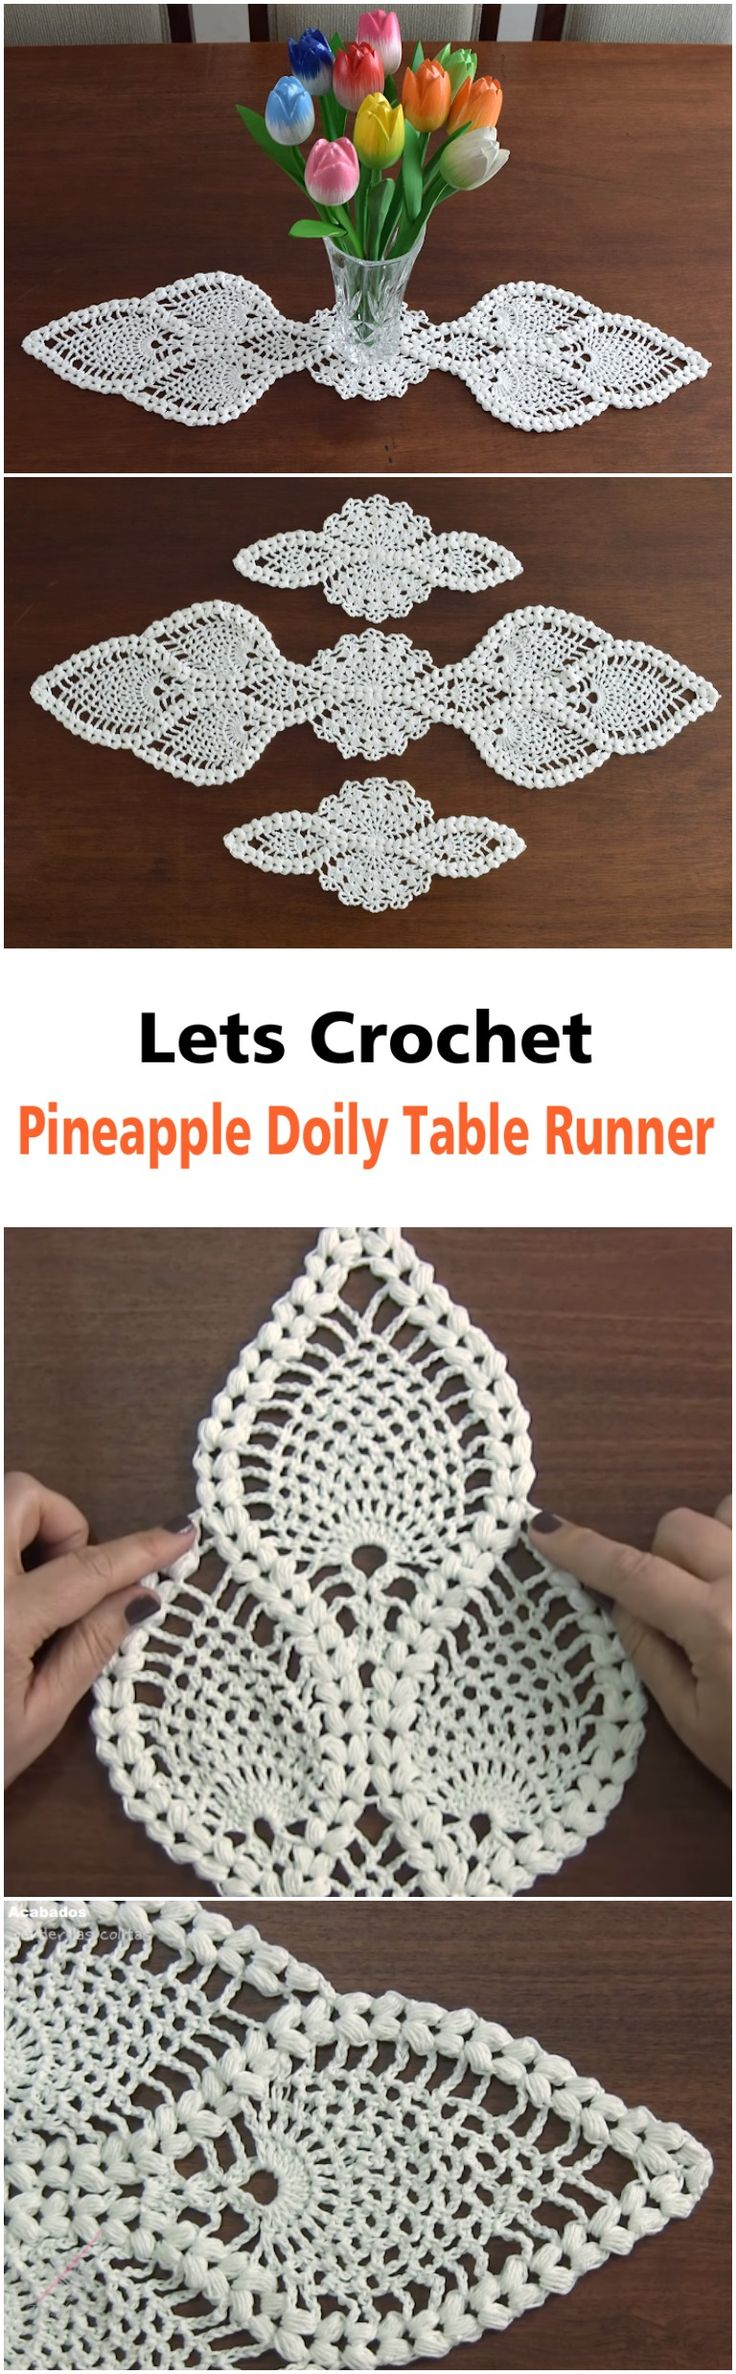 Pineapple Doily Table Runner